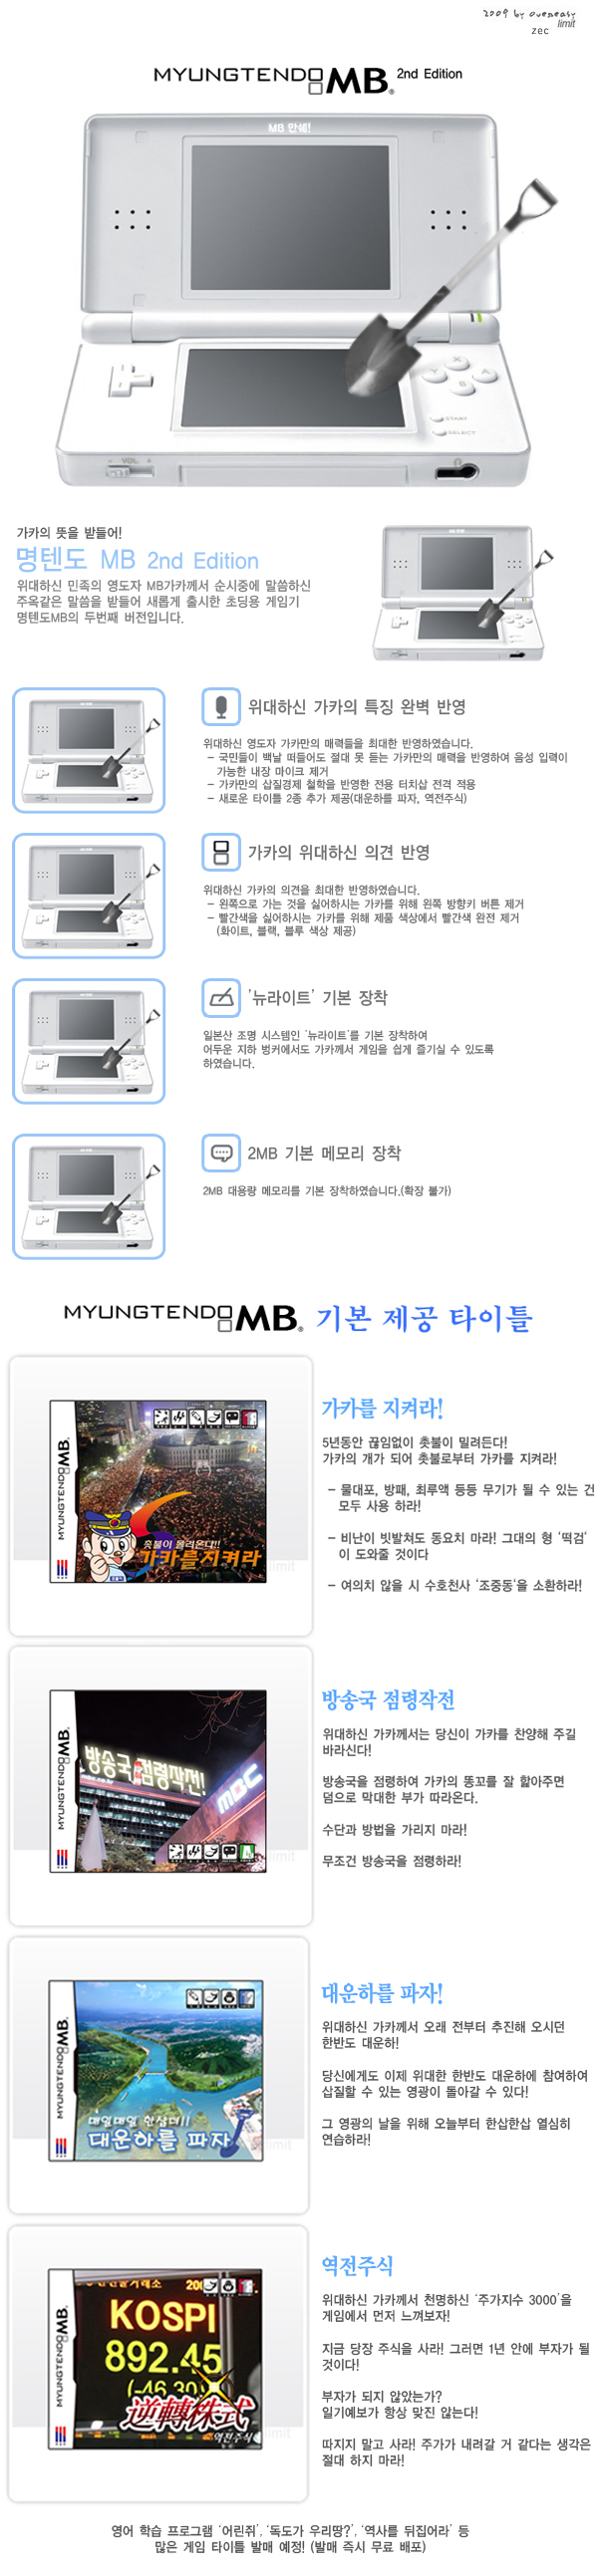 명텐도MB 2nd Edition